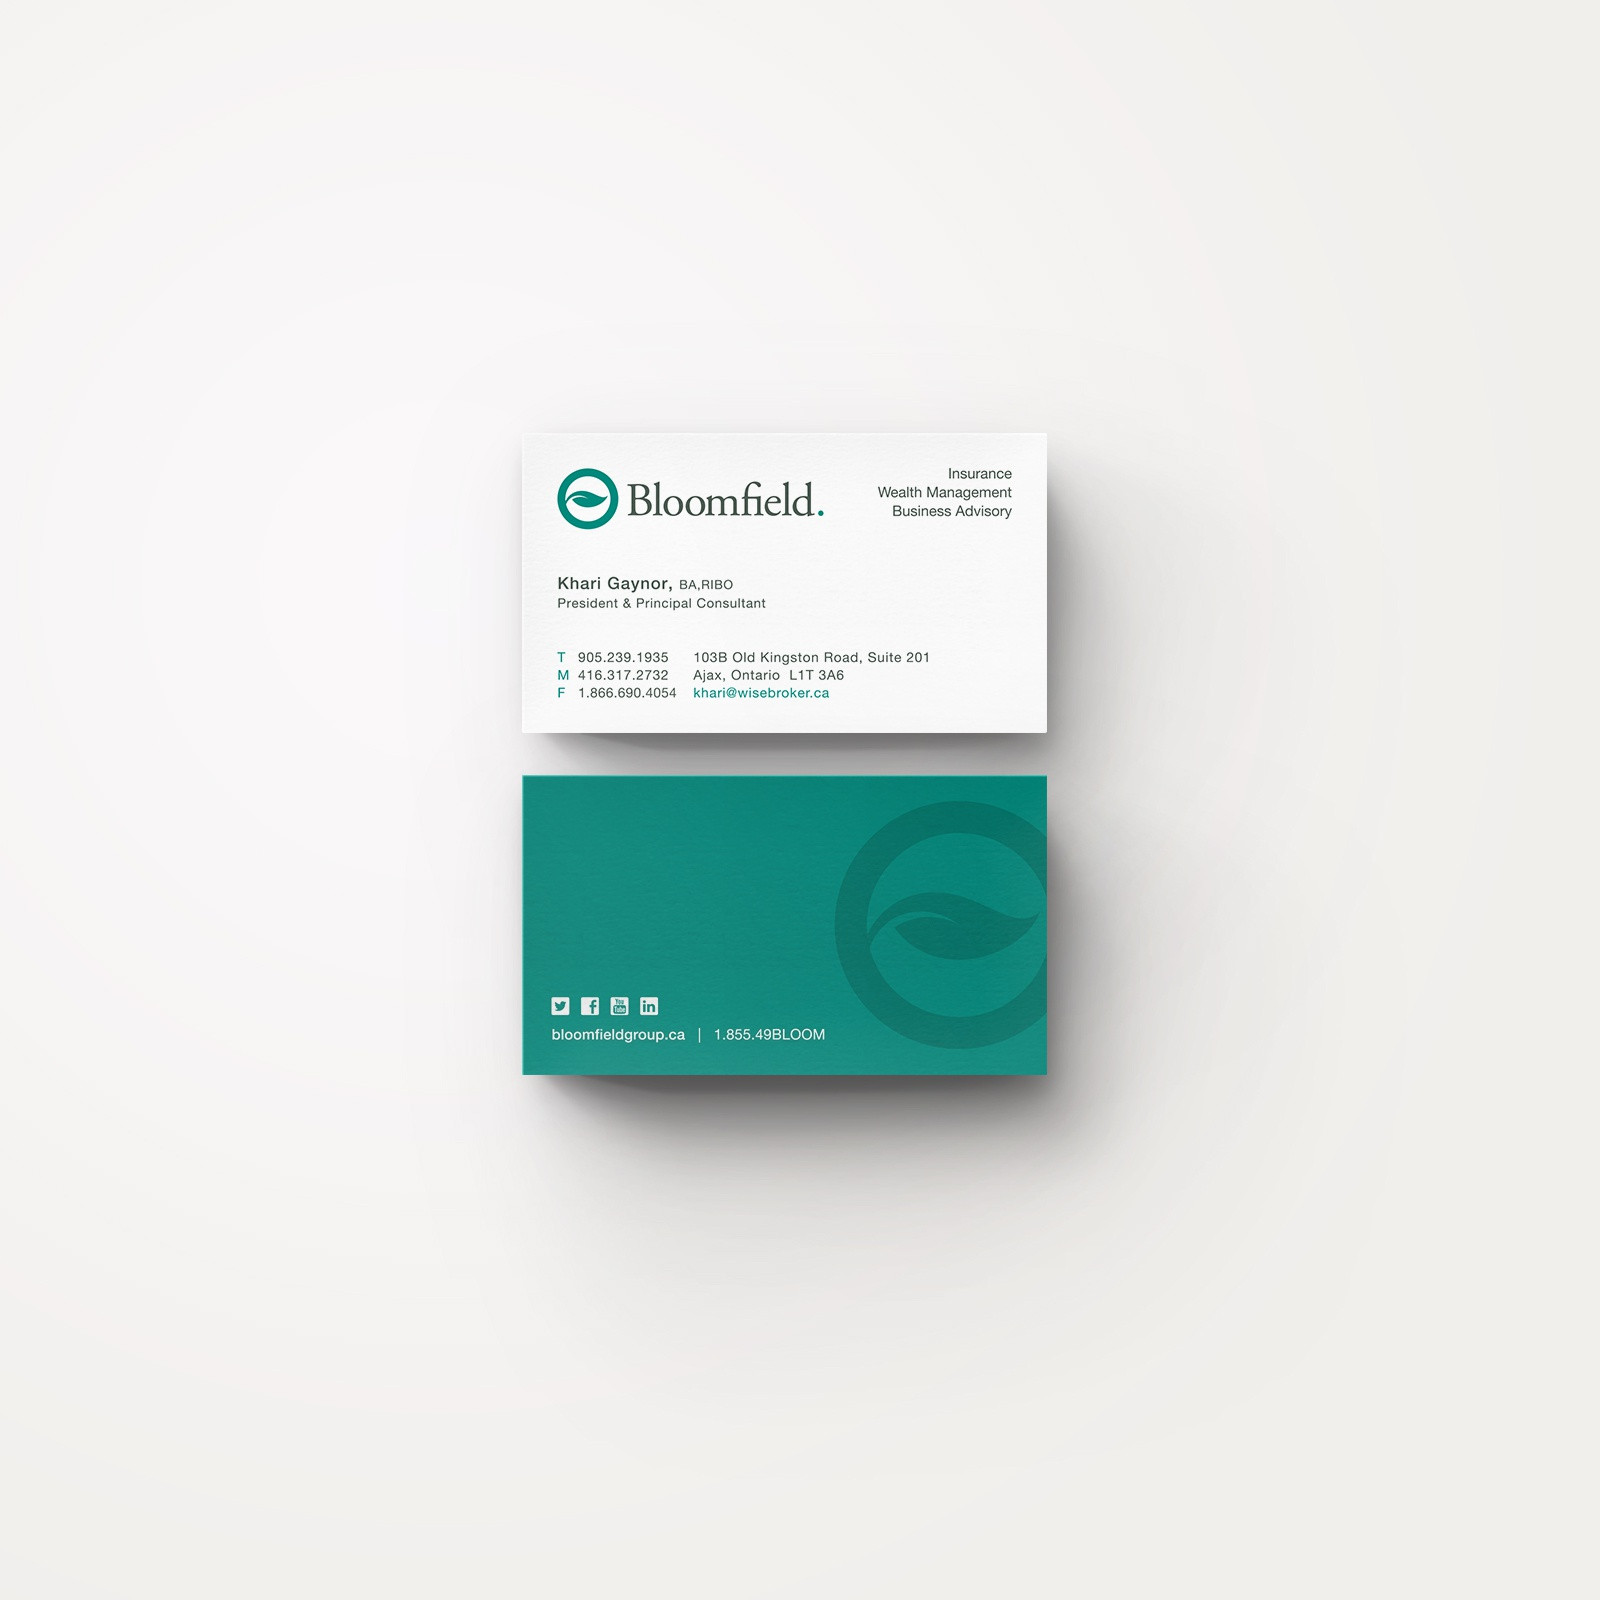 Dribbble - dribbble-bloomfield-business-cards-large.jpg by Kevin ...